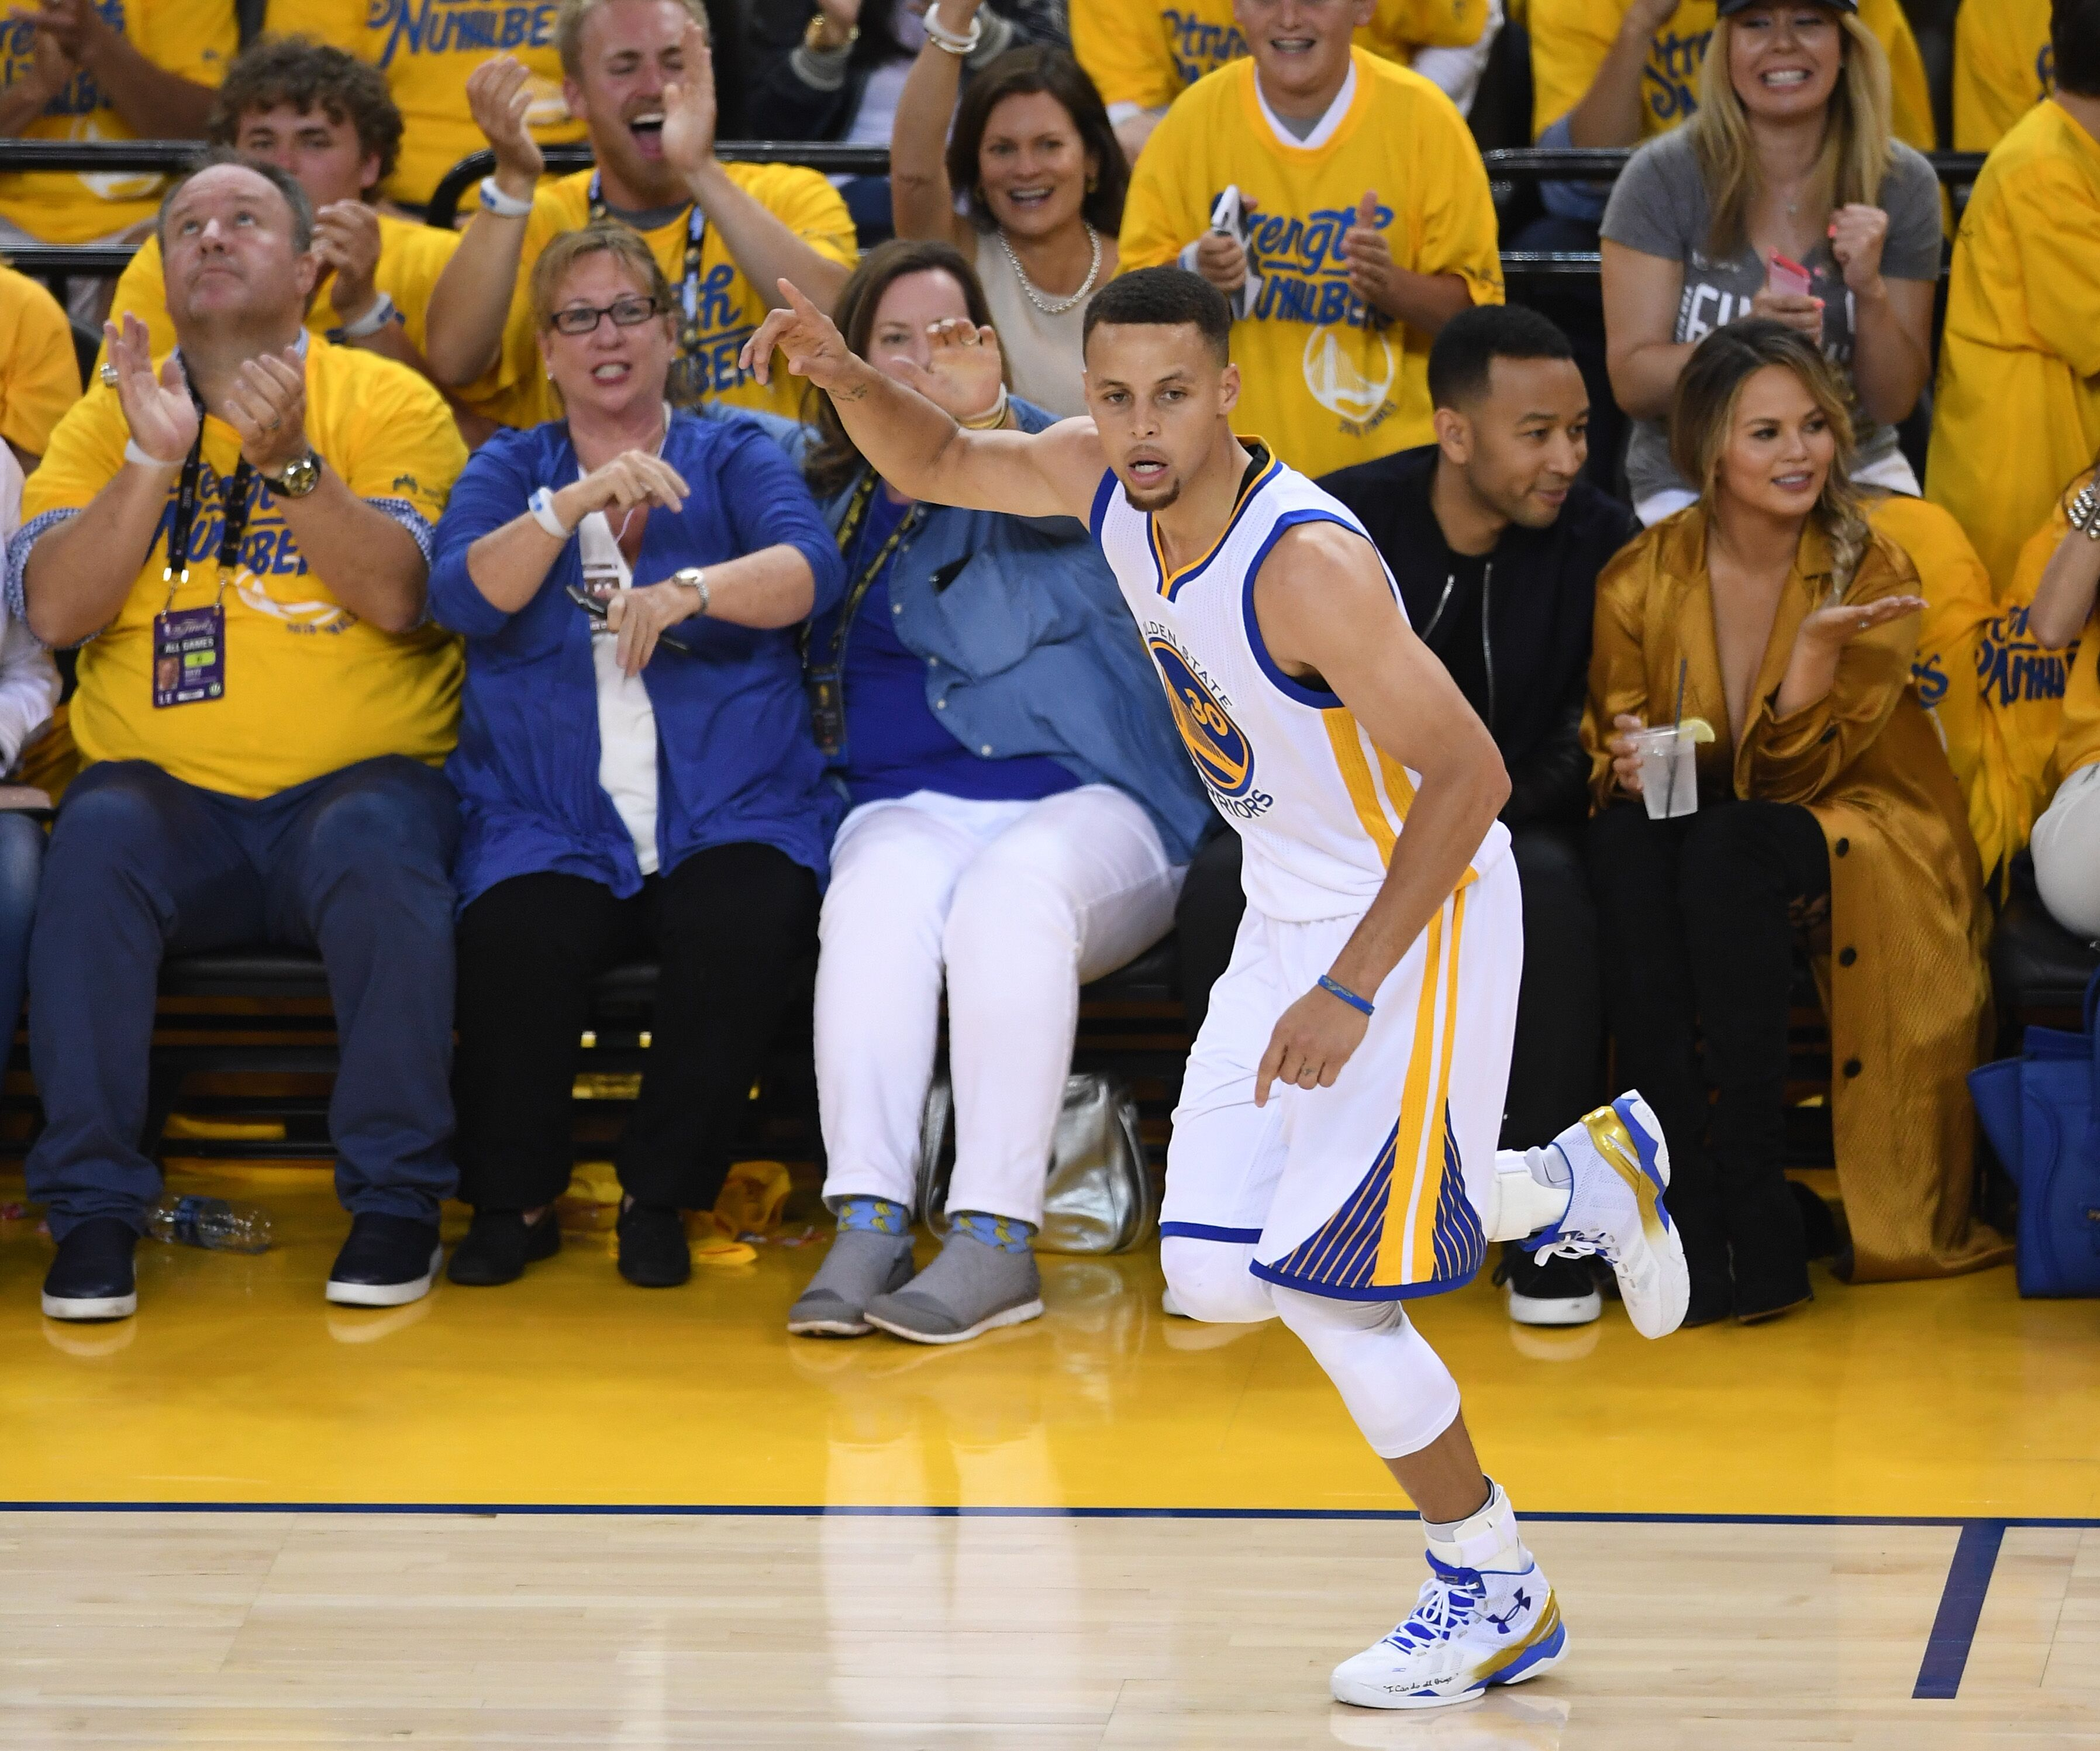 Rockets Vs Warriors Time Central: NBA Finals: Warriors Vs. Cavaliers Game 1 Recap, Full